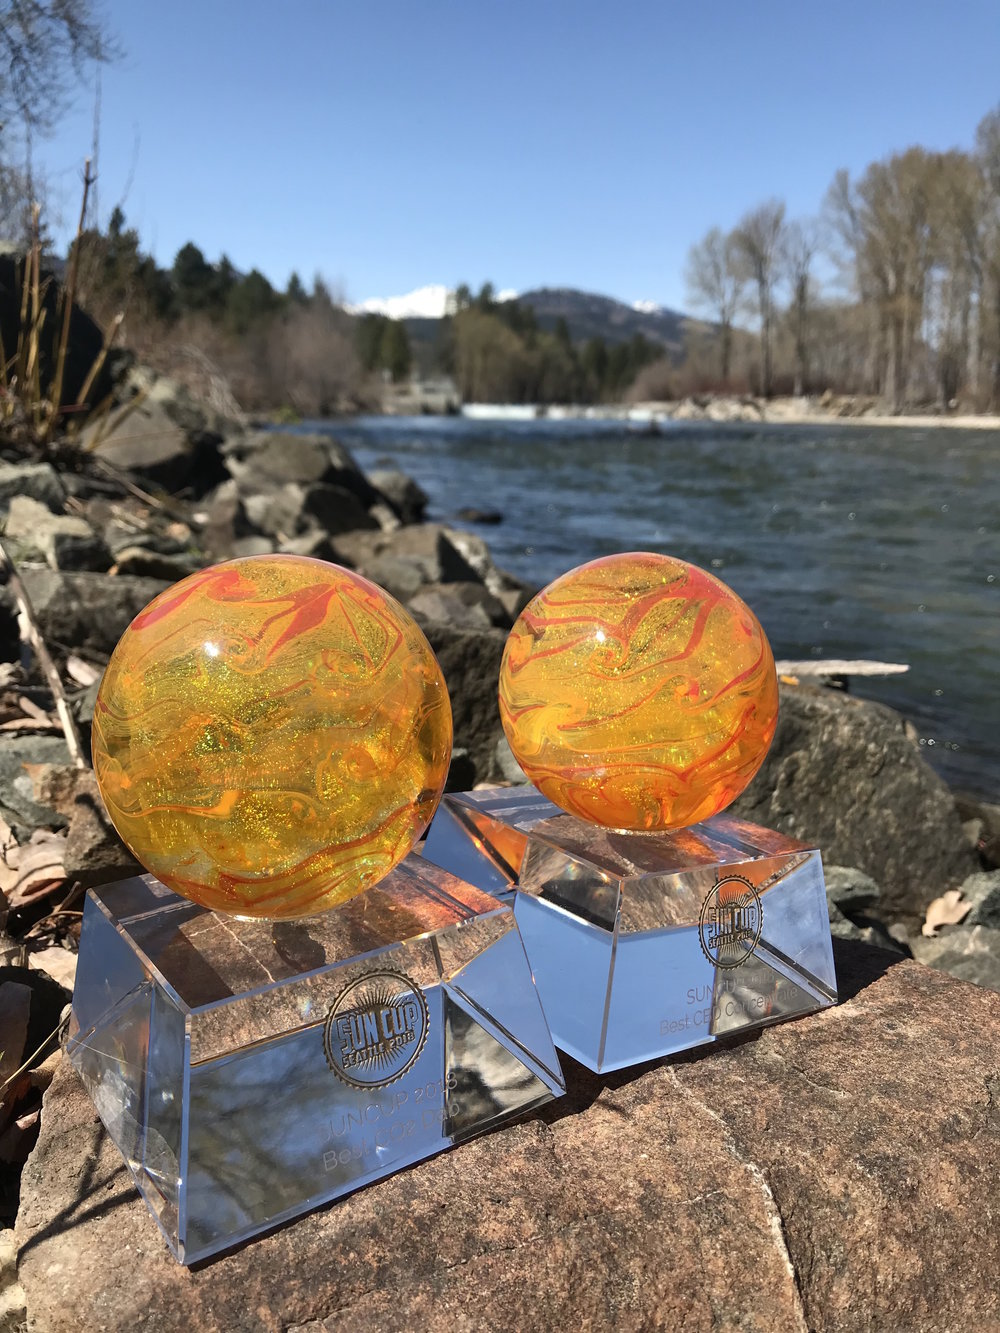 Lazy Bee Garden's 2018 Sun Cup Sungrown Weed Awards for Best THC Dab and Best CBD Concentrate